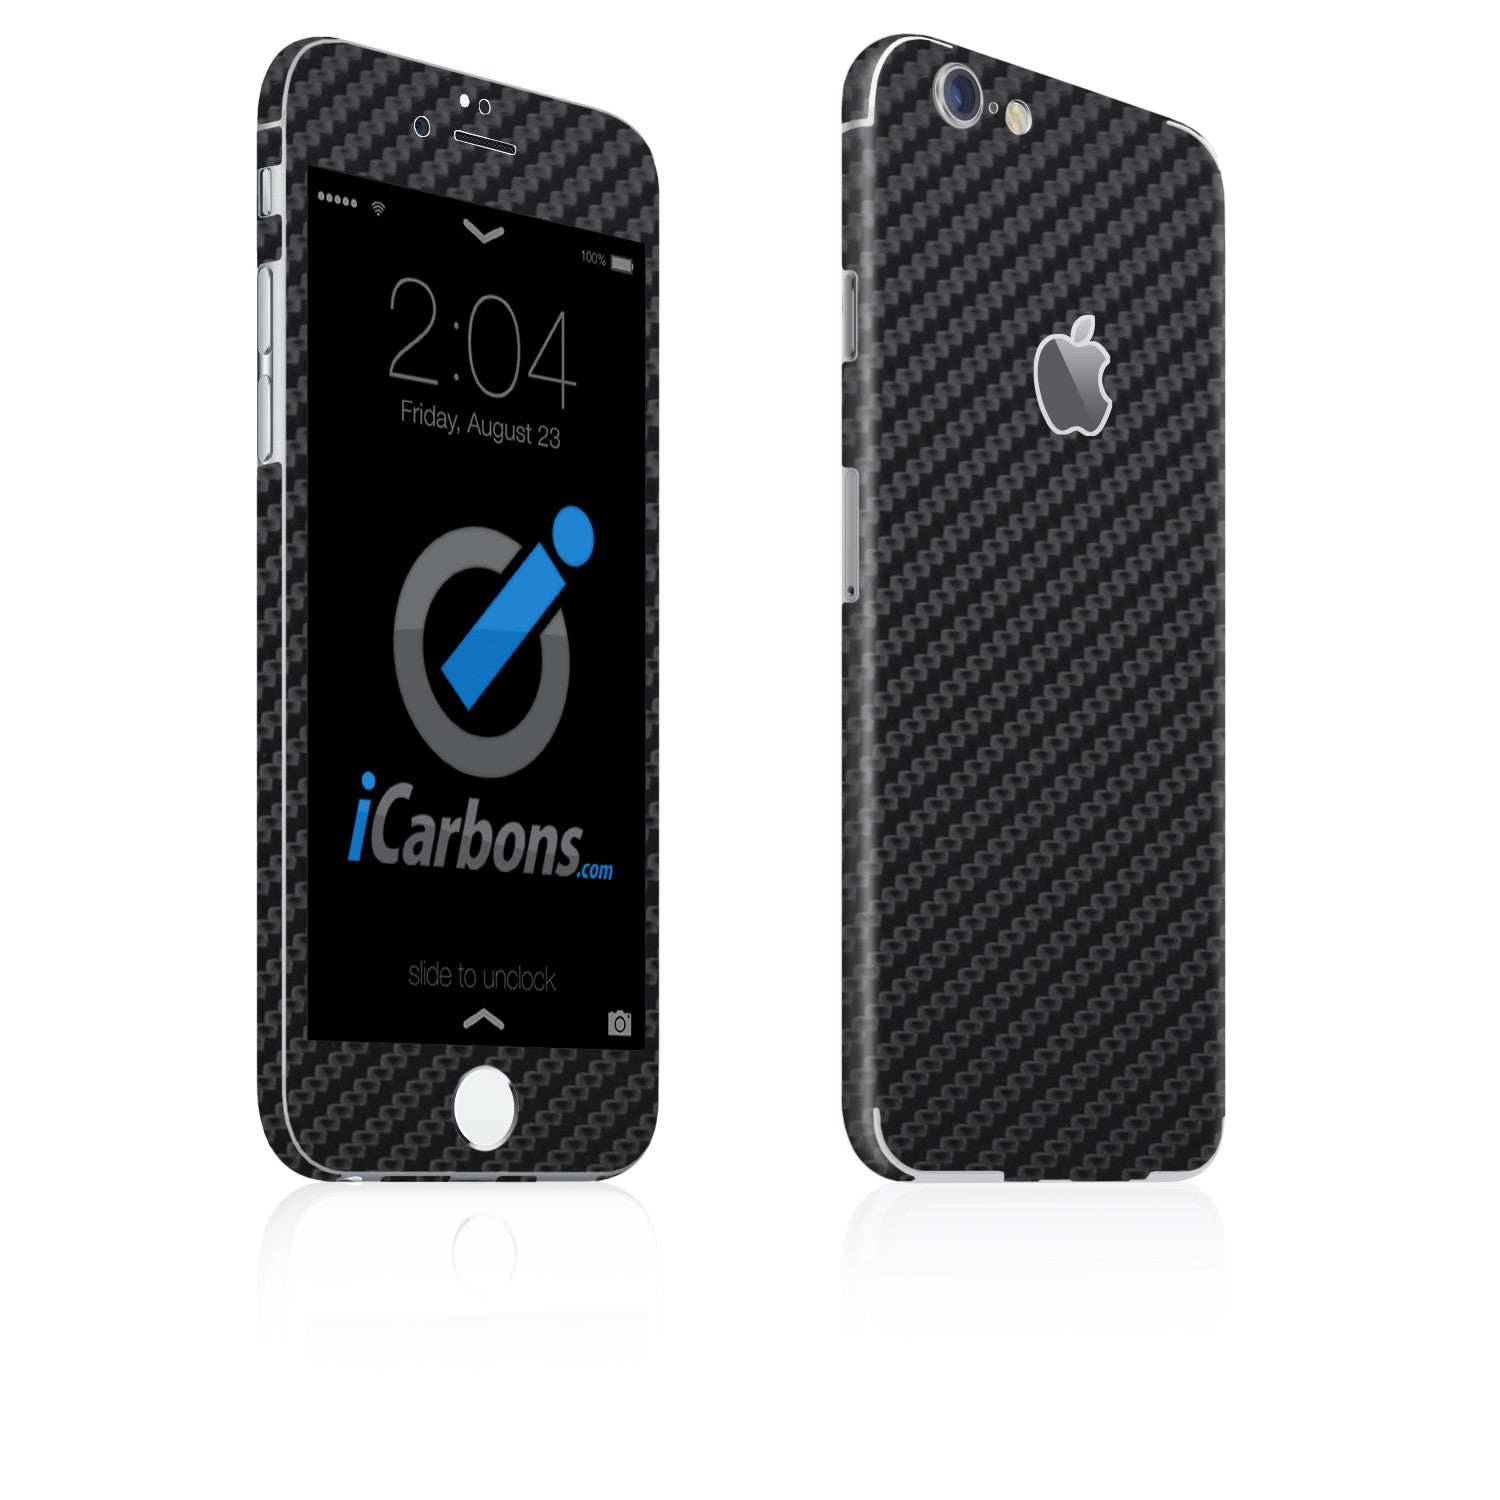 reputable site 33836 b39eb iPhone 6 / 6S Skin - Black Carbon Fiber